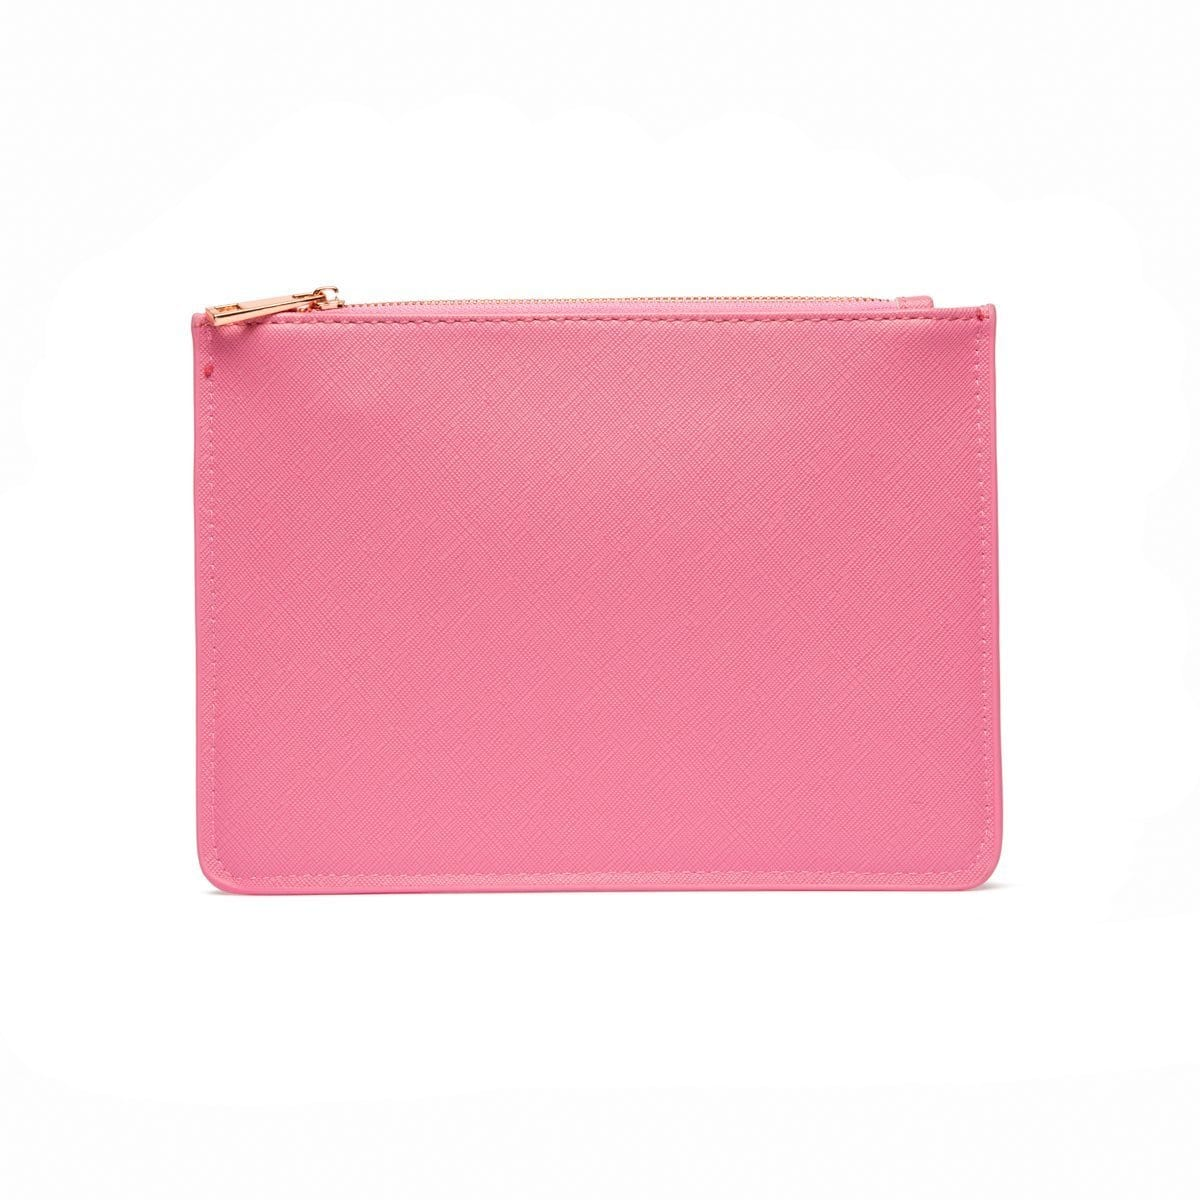 Flamingo Pink Sienna Pouch (PERSONALISE ME!)